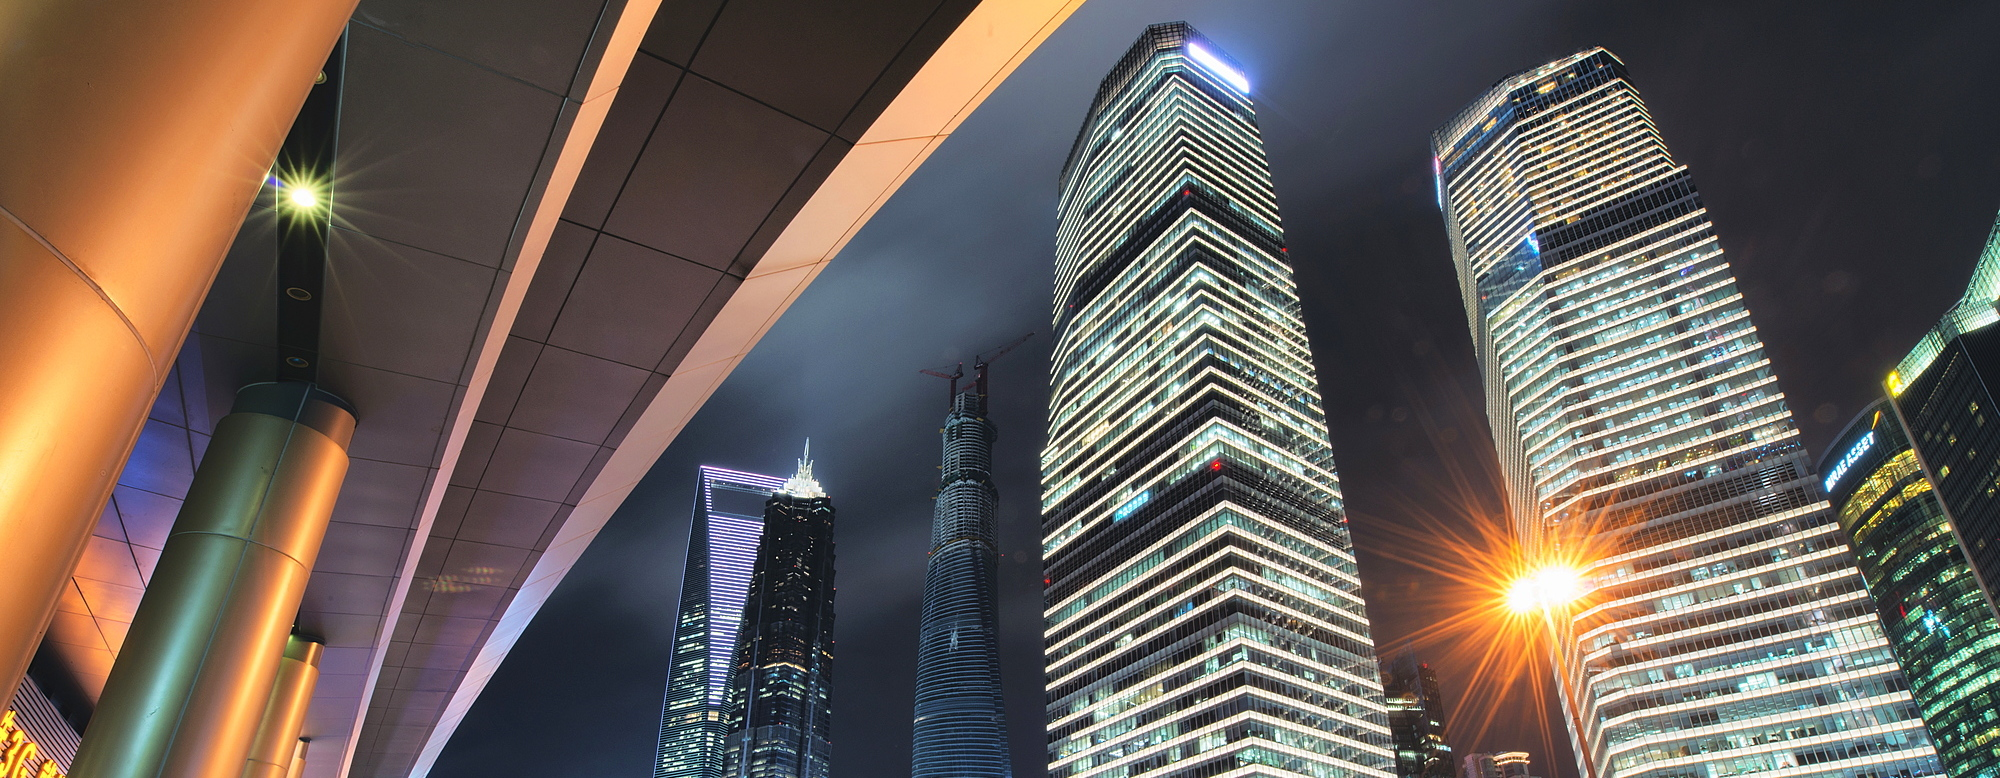 1171-70 ( Andreas Brandl ) - Wide angle view of ultra modern architecture in Shanghai Pudong at night, Shanghai, China, Asia